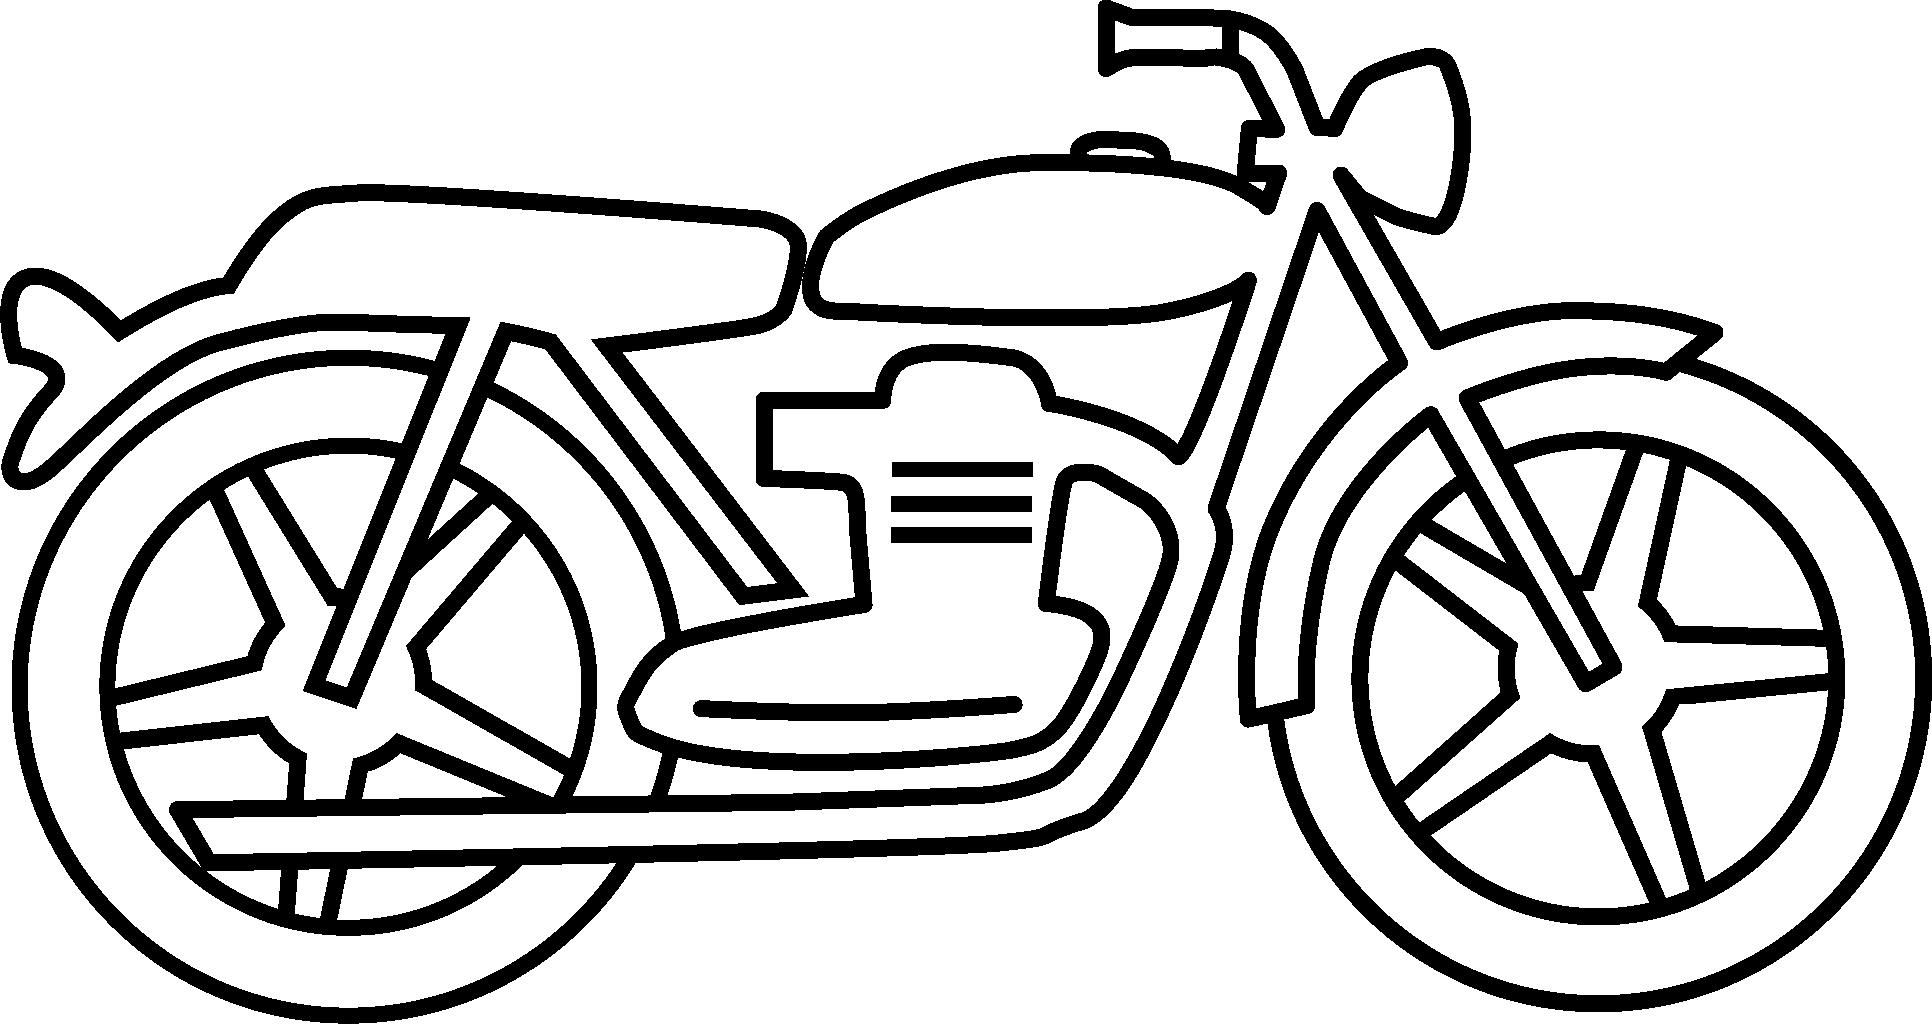 Couple riding motorcycle black and white clipart picture royalty free stock Motorcycle Drawings Clipart - Clipart Kid | DESIGN ... picture royalty free stock